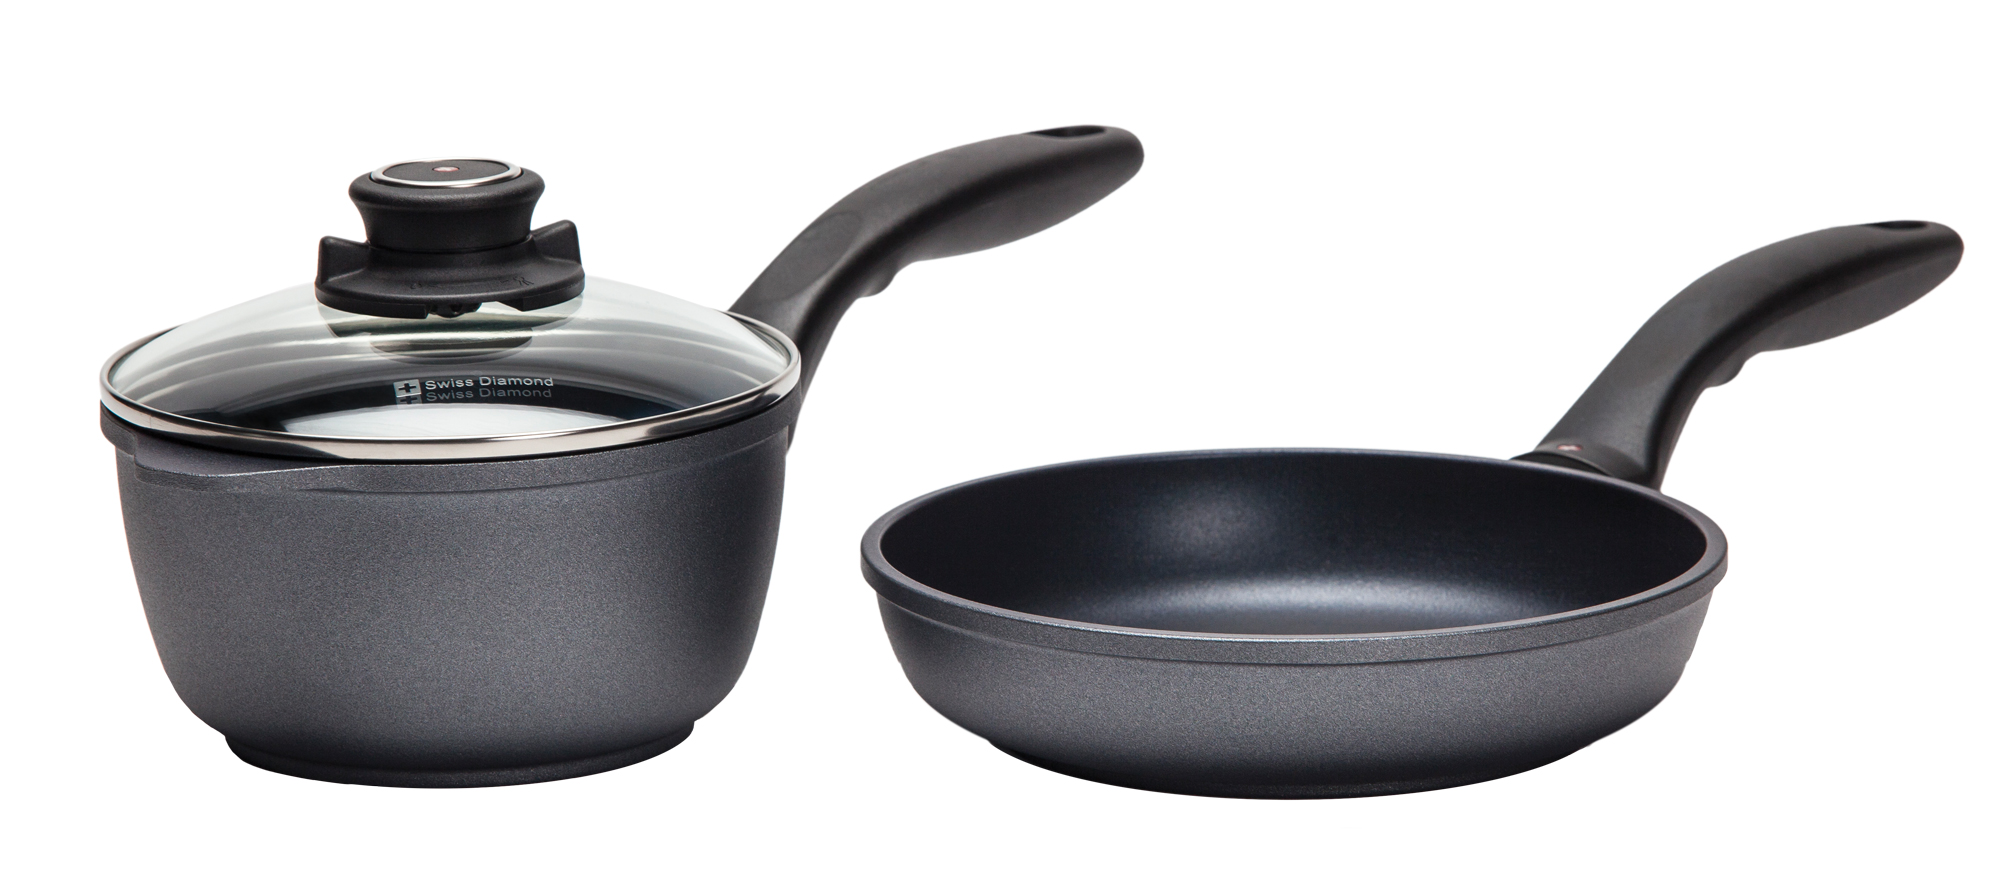 Swiss Diamond frying pan and sauce pot set, $290, from Hillaby's Tools for Cooks. (The Enjoy Centre, 101 Riel Dr., St. Albert, 780-651-7373)